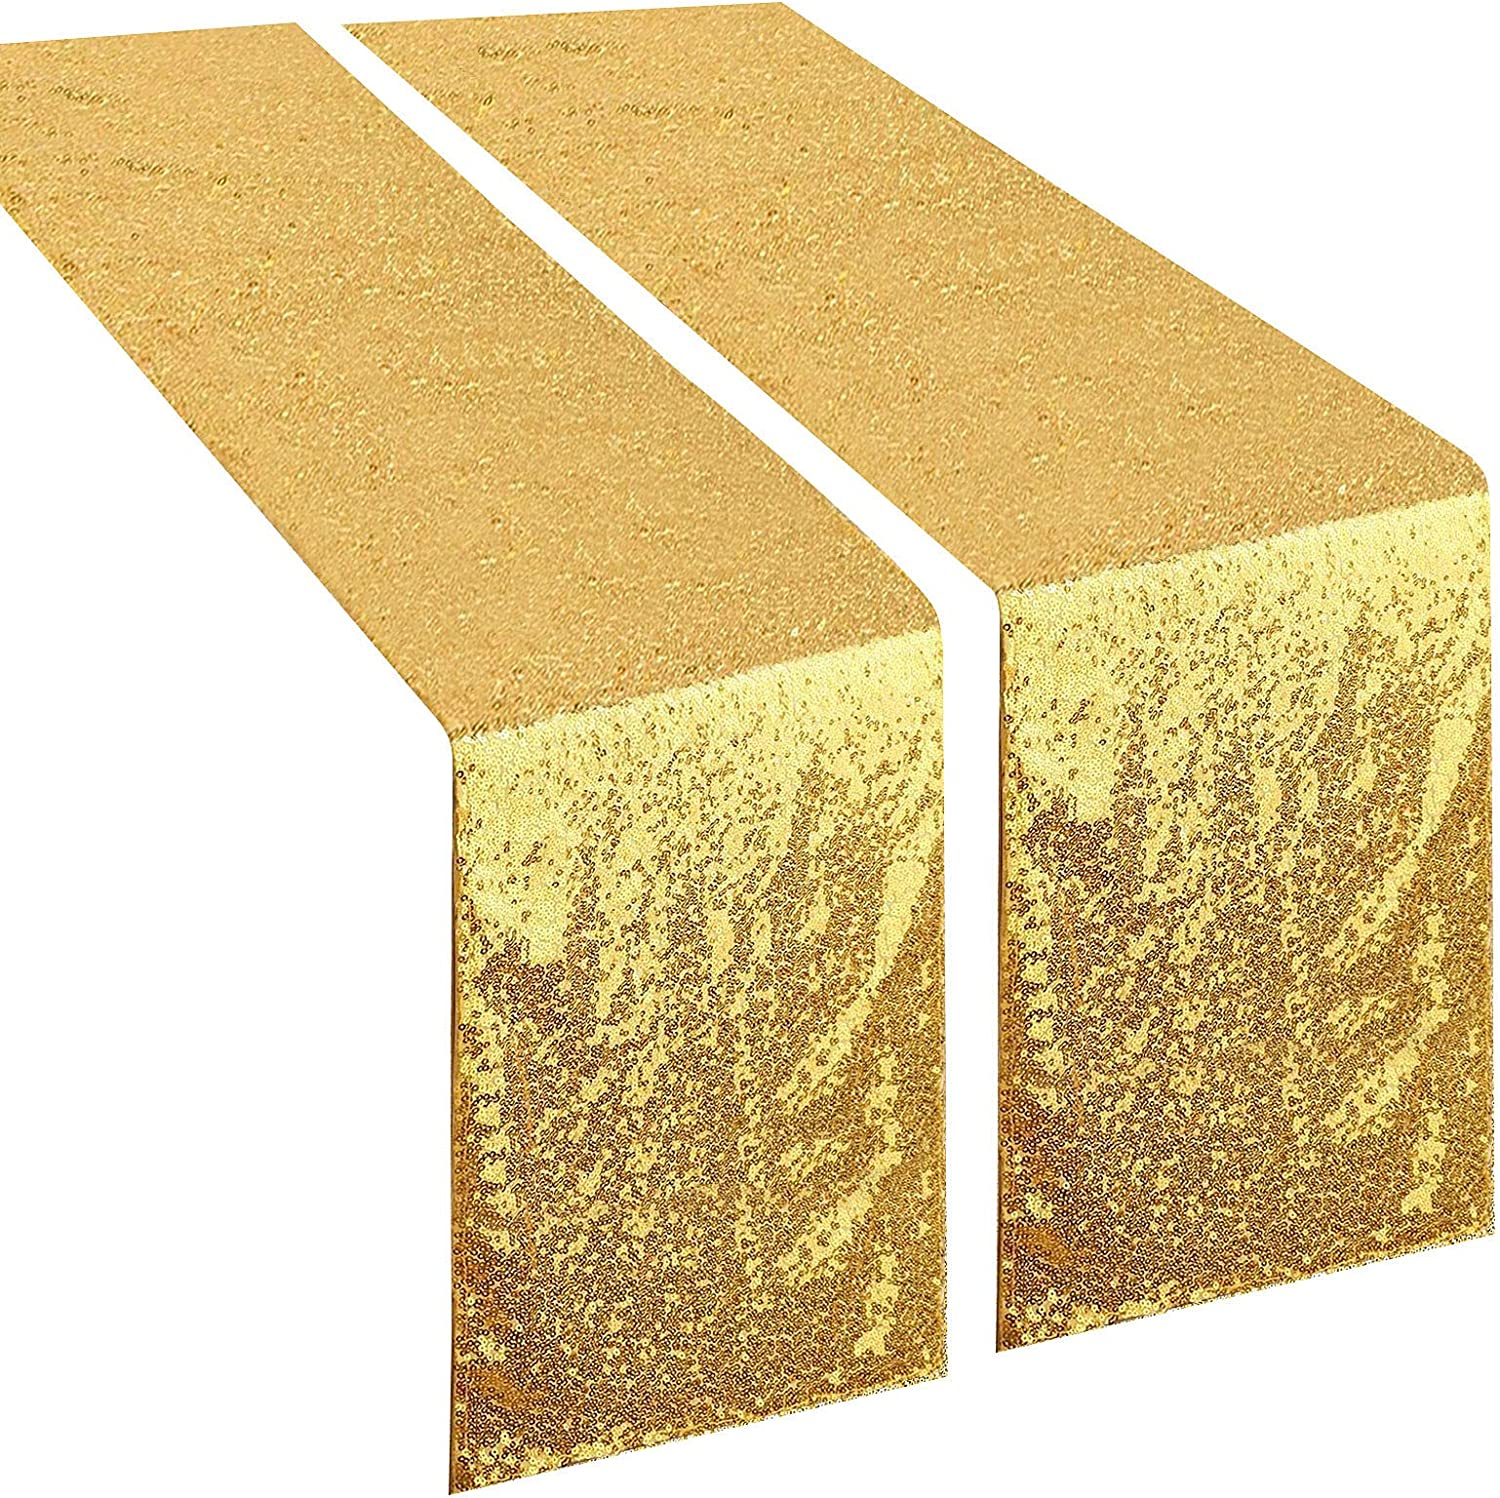 yuboo Gold Sequin Table Runners,2 Pack 12''x 108'' Sparkle Glamorous Tablecloth,Glitter Table Linens for Graduation,Birthday Party,Wedding,Bridal Baby Shower, Bachelorette Celebration,Christmas.